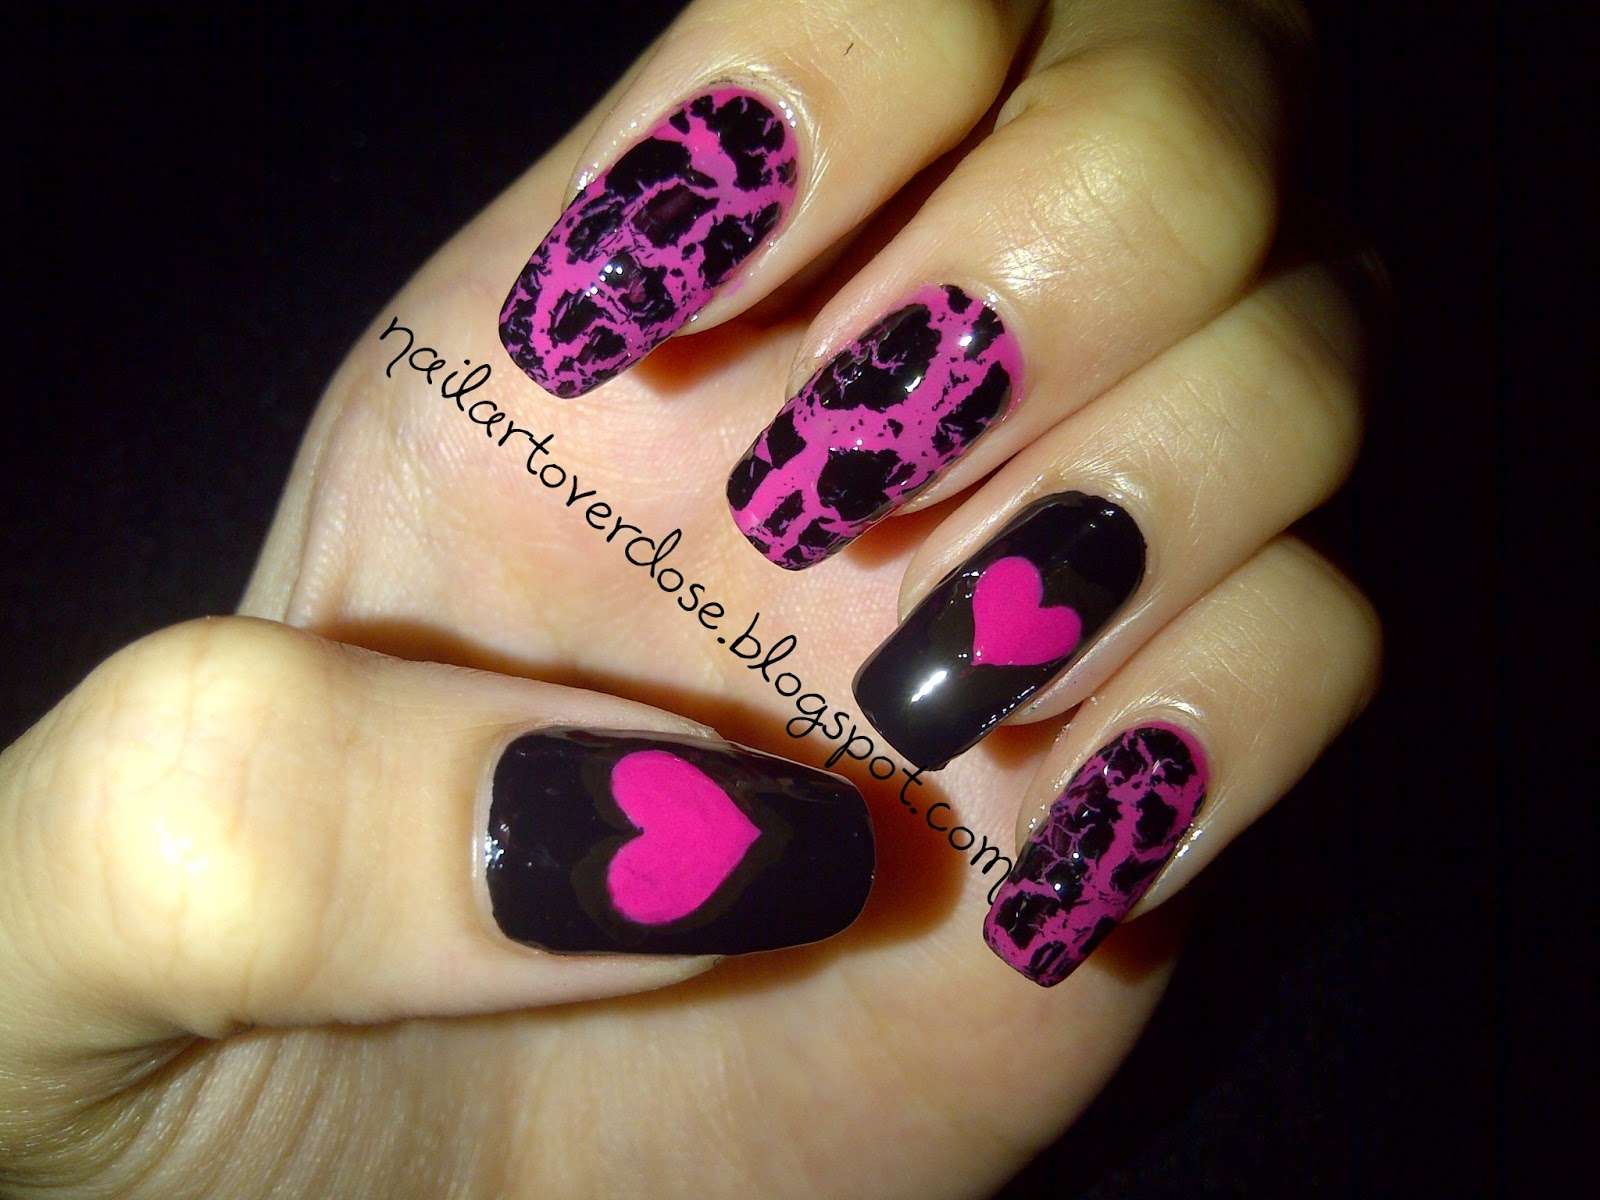 The Fascinating Black nail designs Images